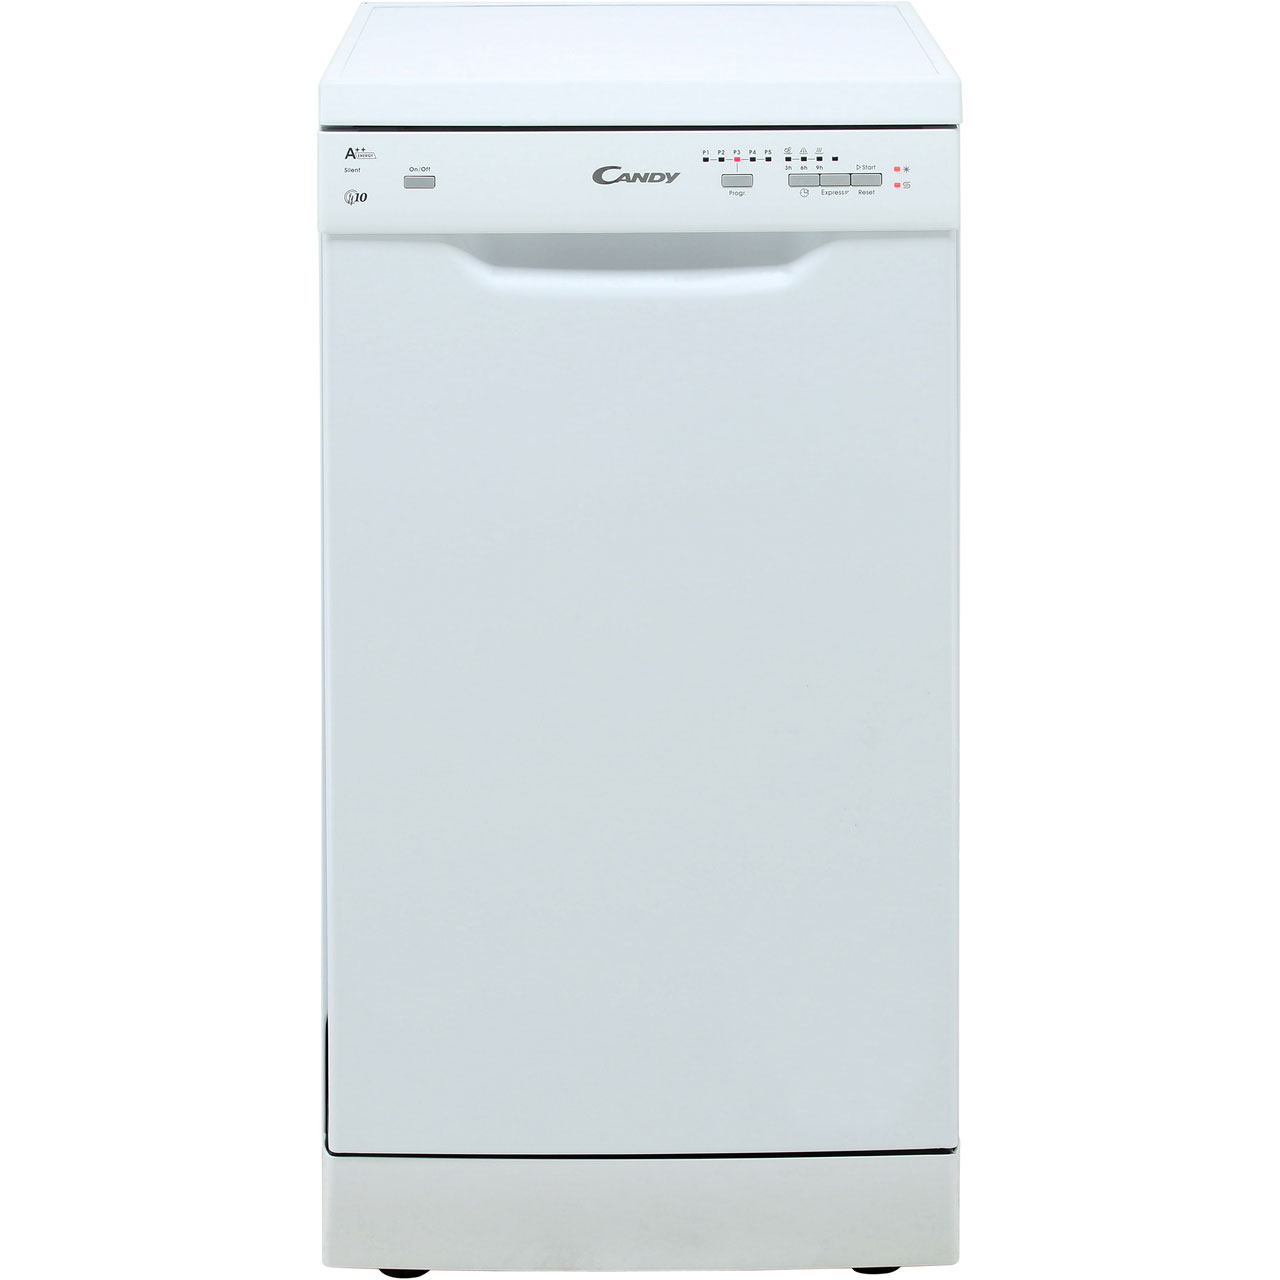 Candy Slimline Dishwasher - White - A++ Rated